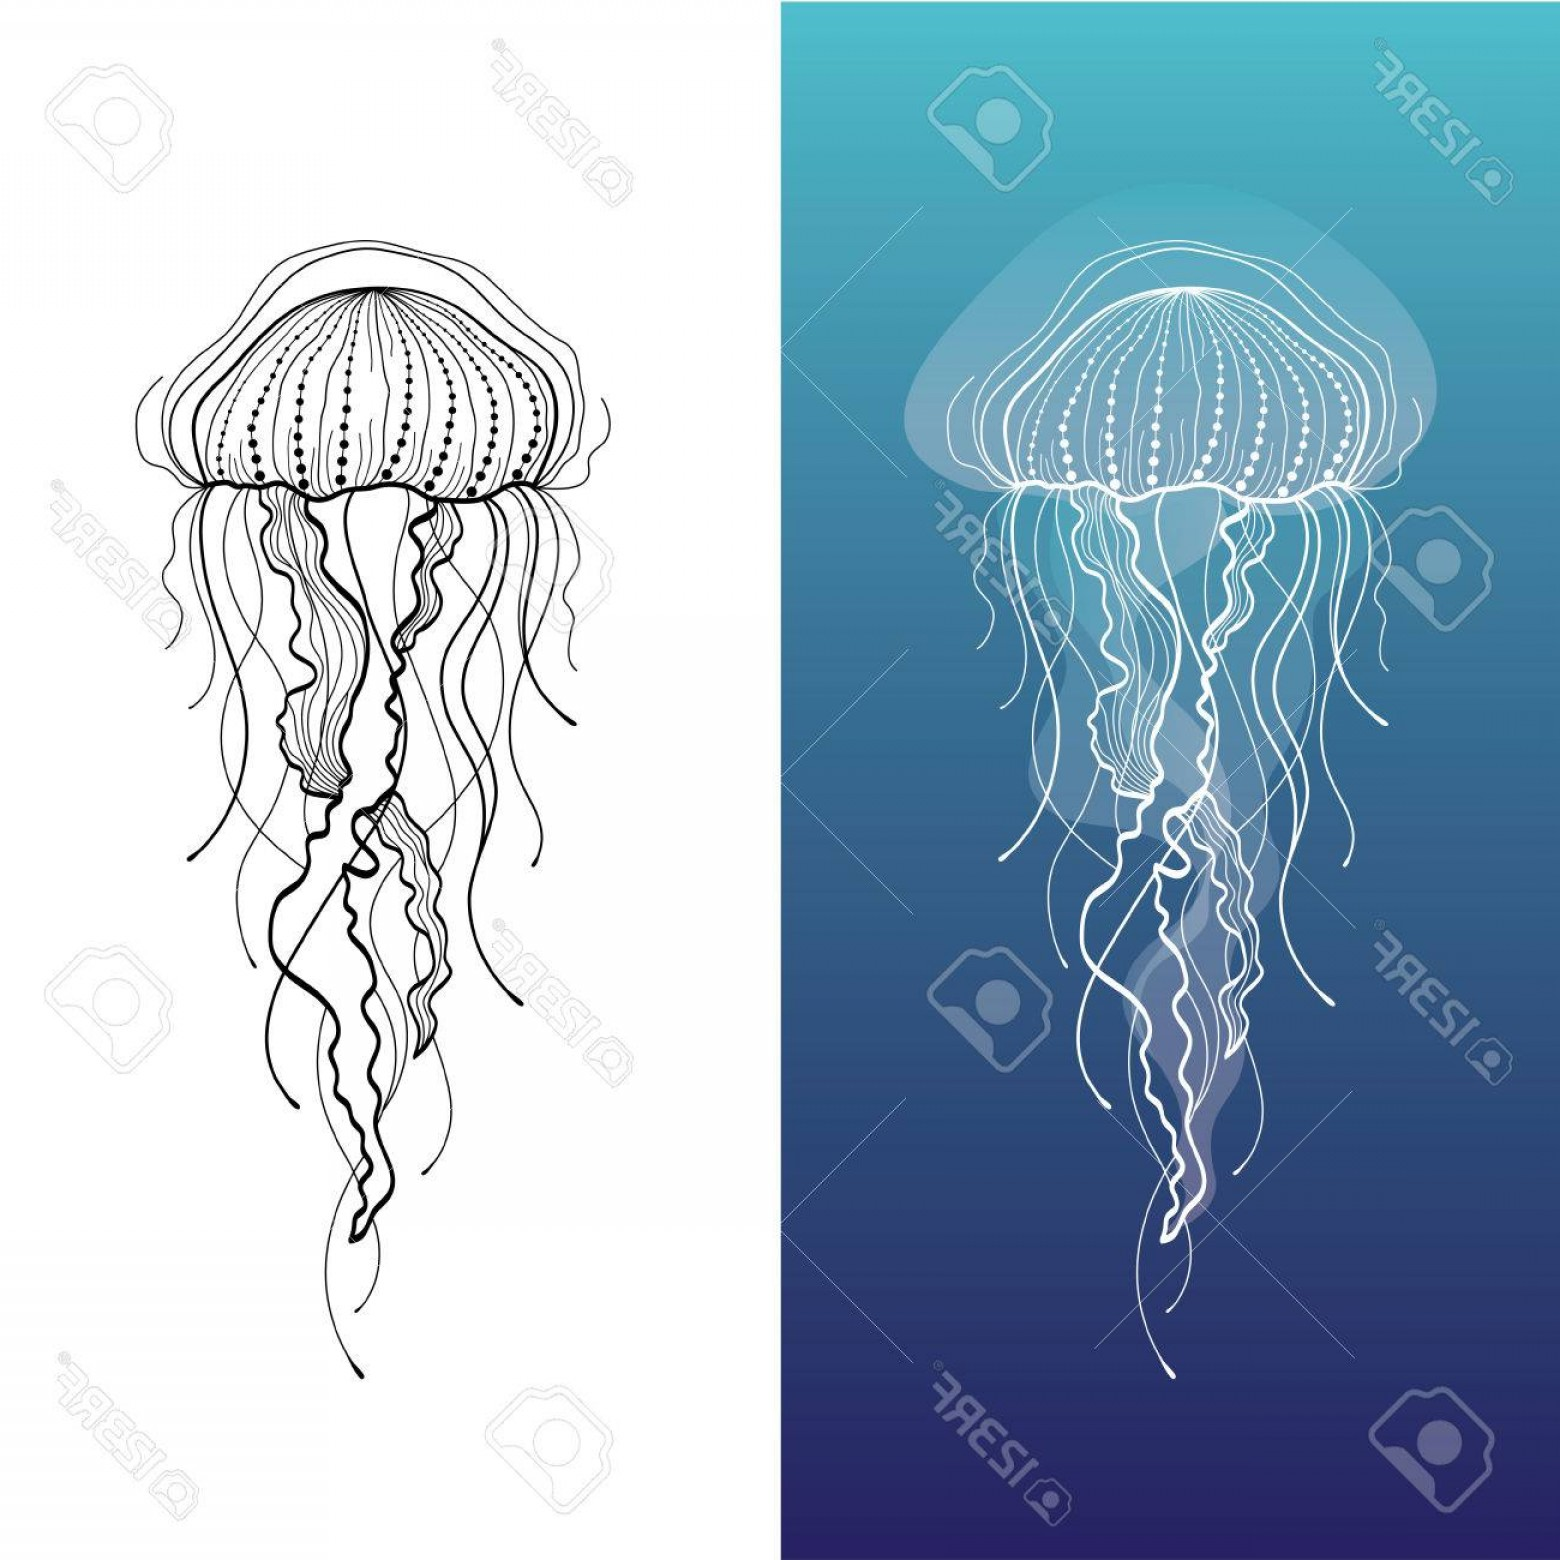 Jelly Fish Graphic Vector: Photostock Vector Abstract Graphic Illustration Of Jellyfish In Vector